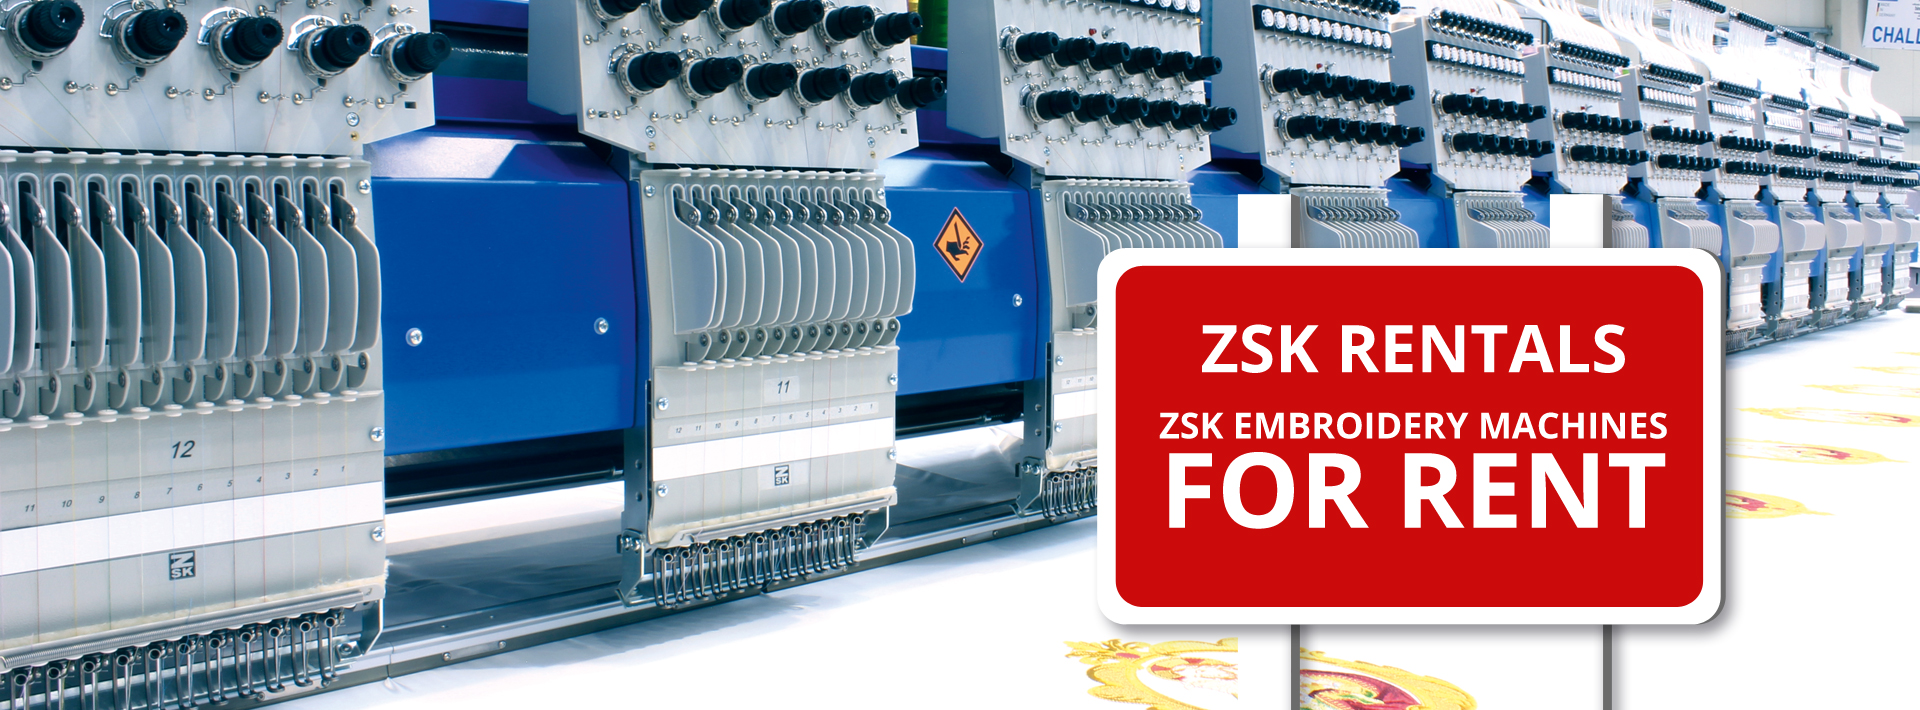 ZSK RENTALS - Rent a ZSK Embroidery Machine